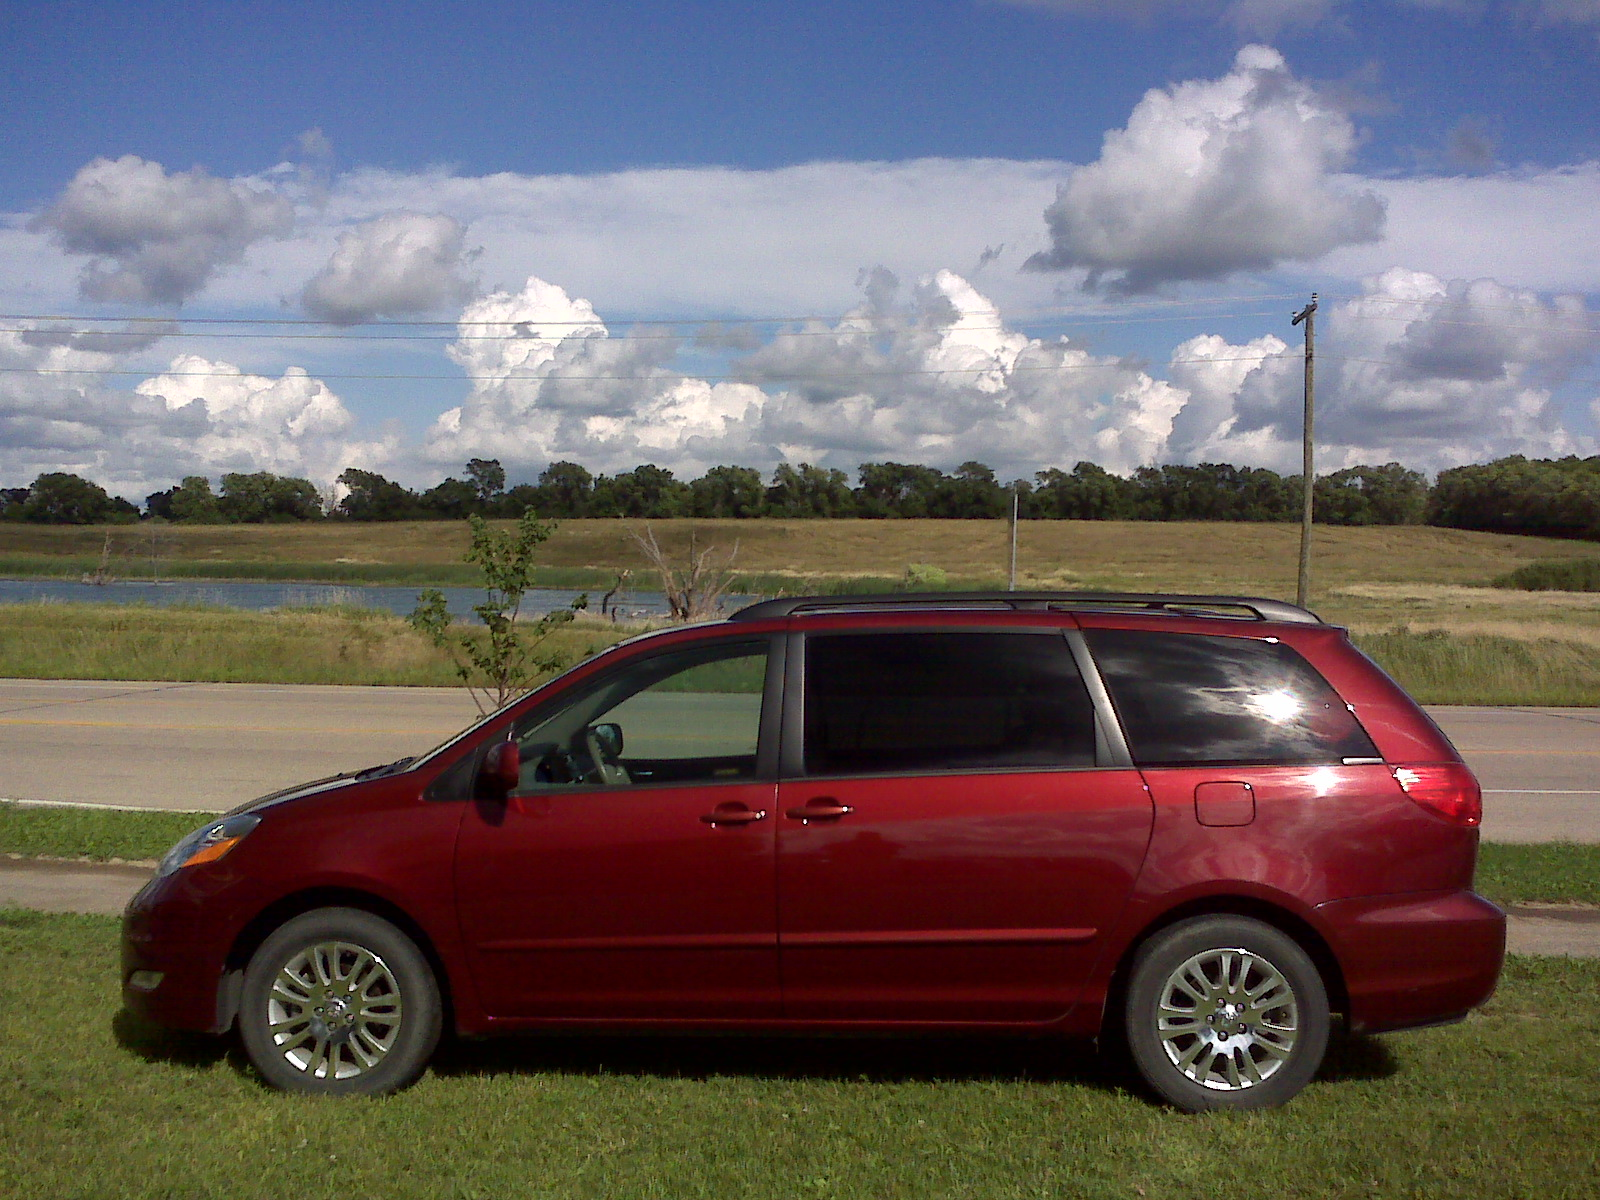 Photograph of a maroon 2007 V6, front-wheel-drive Toyota Sienna minivan